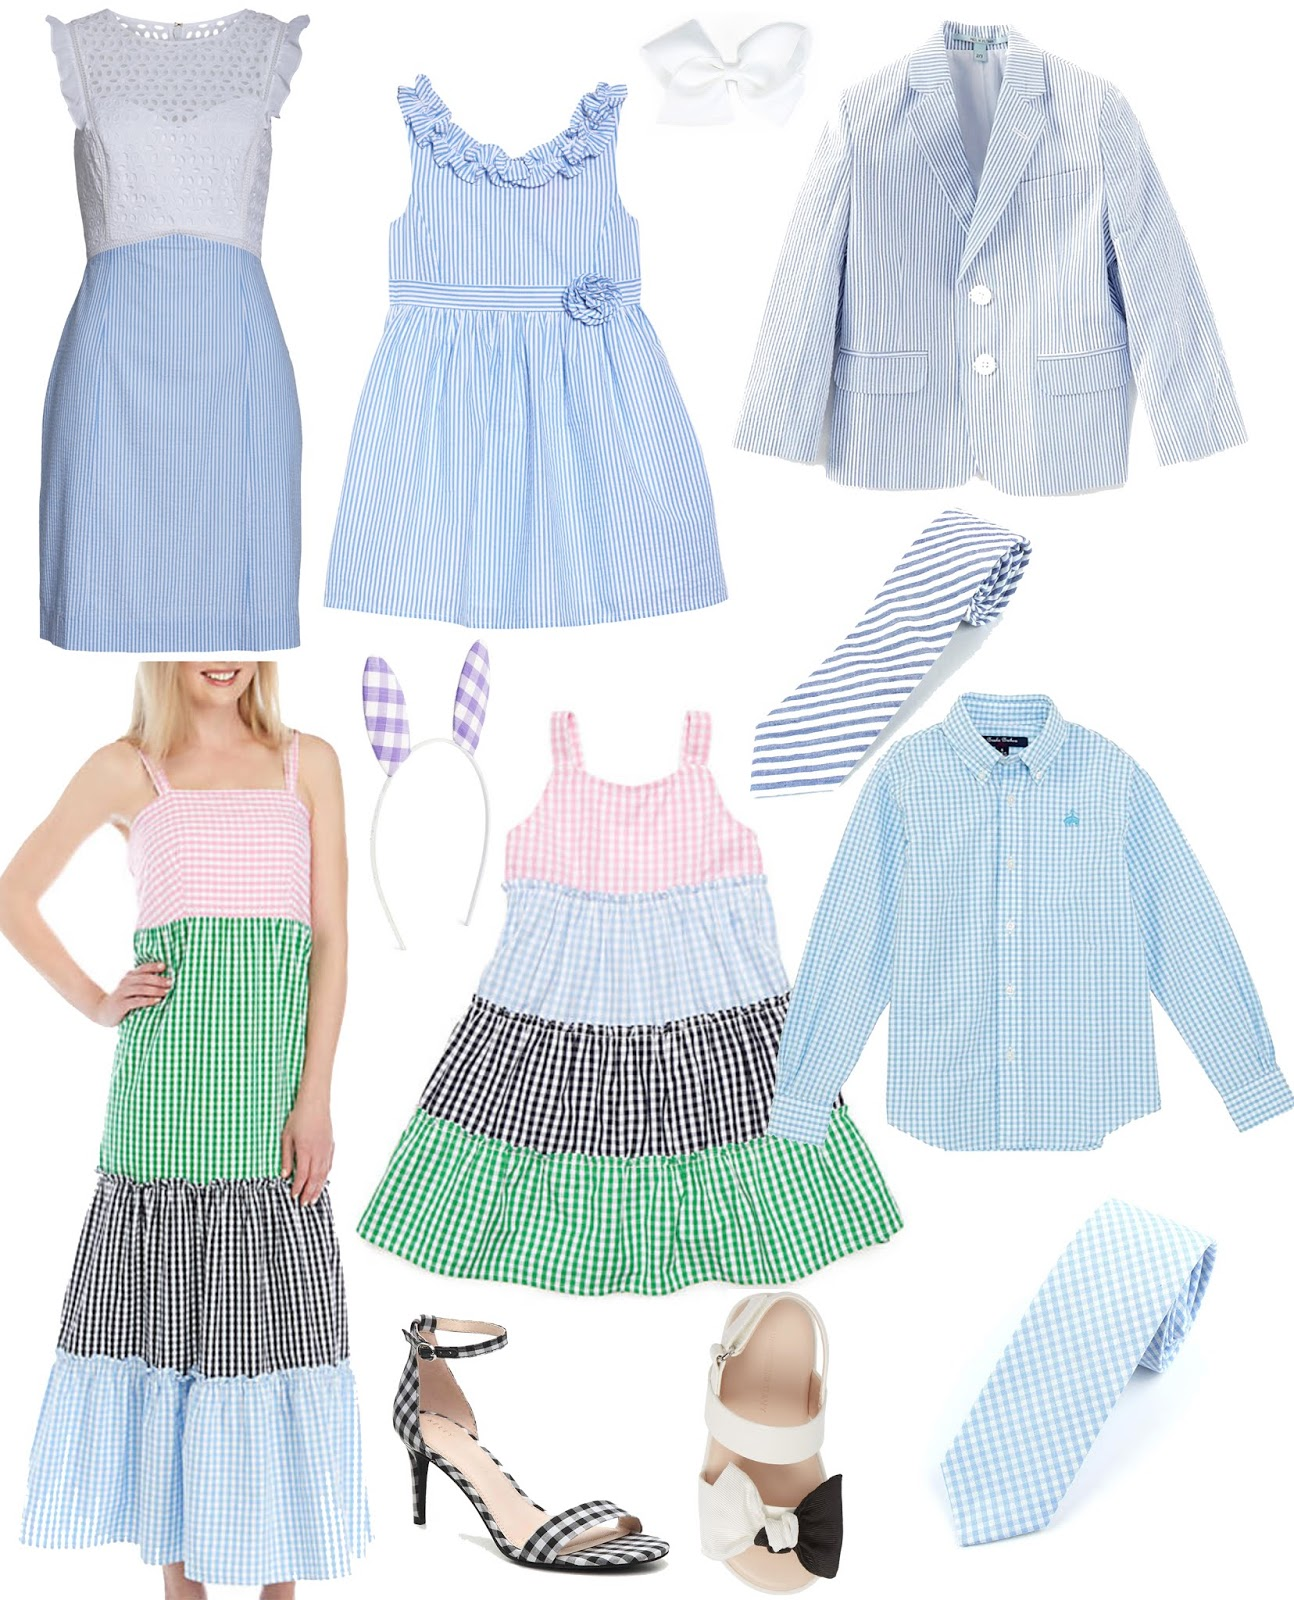 Easter Dresses + Easter Outfit Inspo for the Whole Family  - Something Delightful Blog